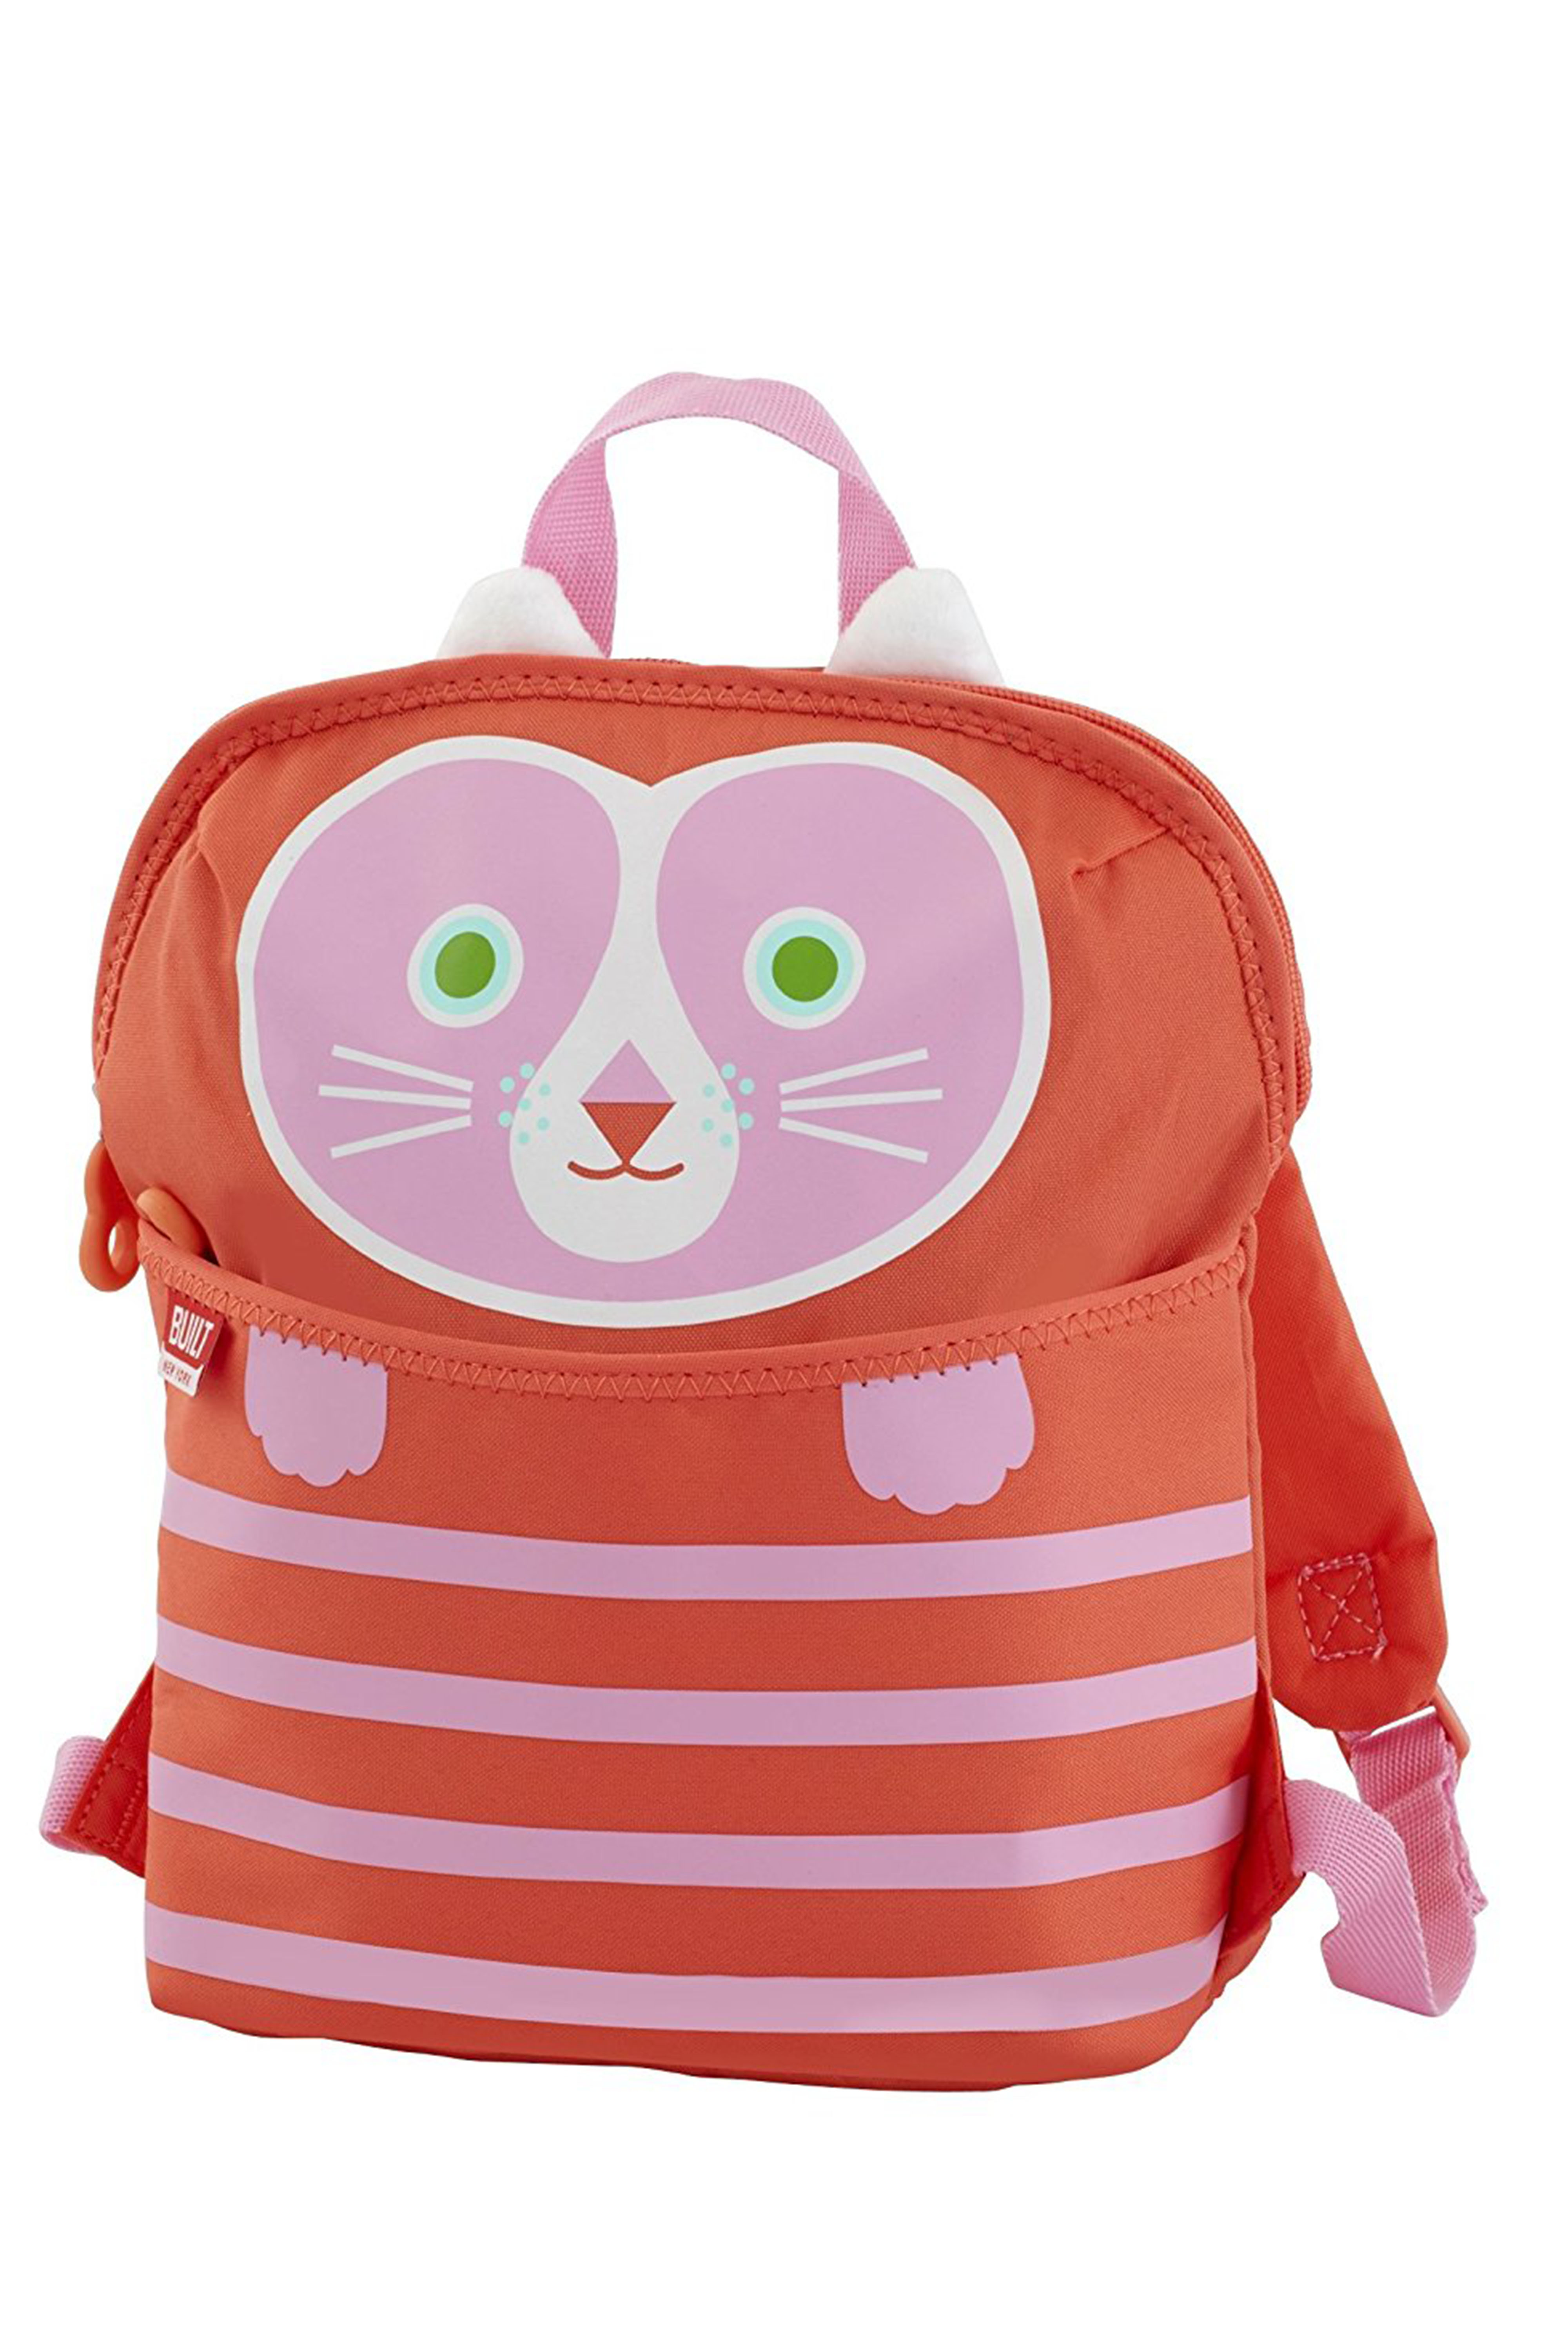 20 best kids lunch boxes bags 2017 top rated school lunch box